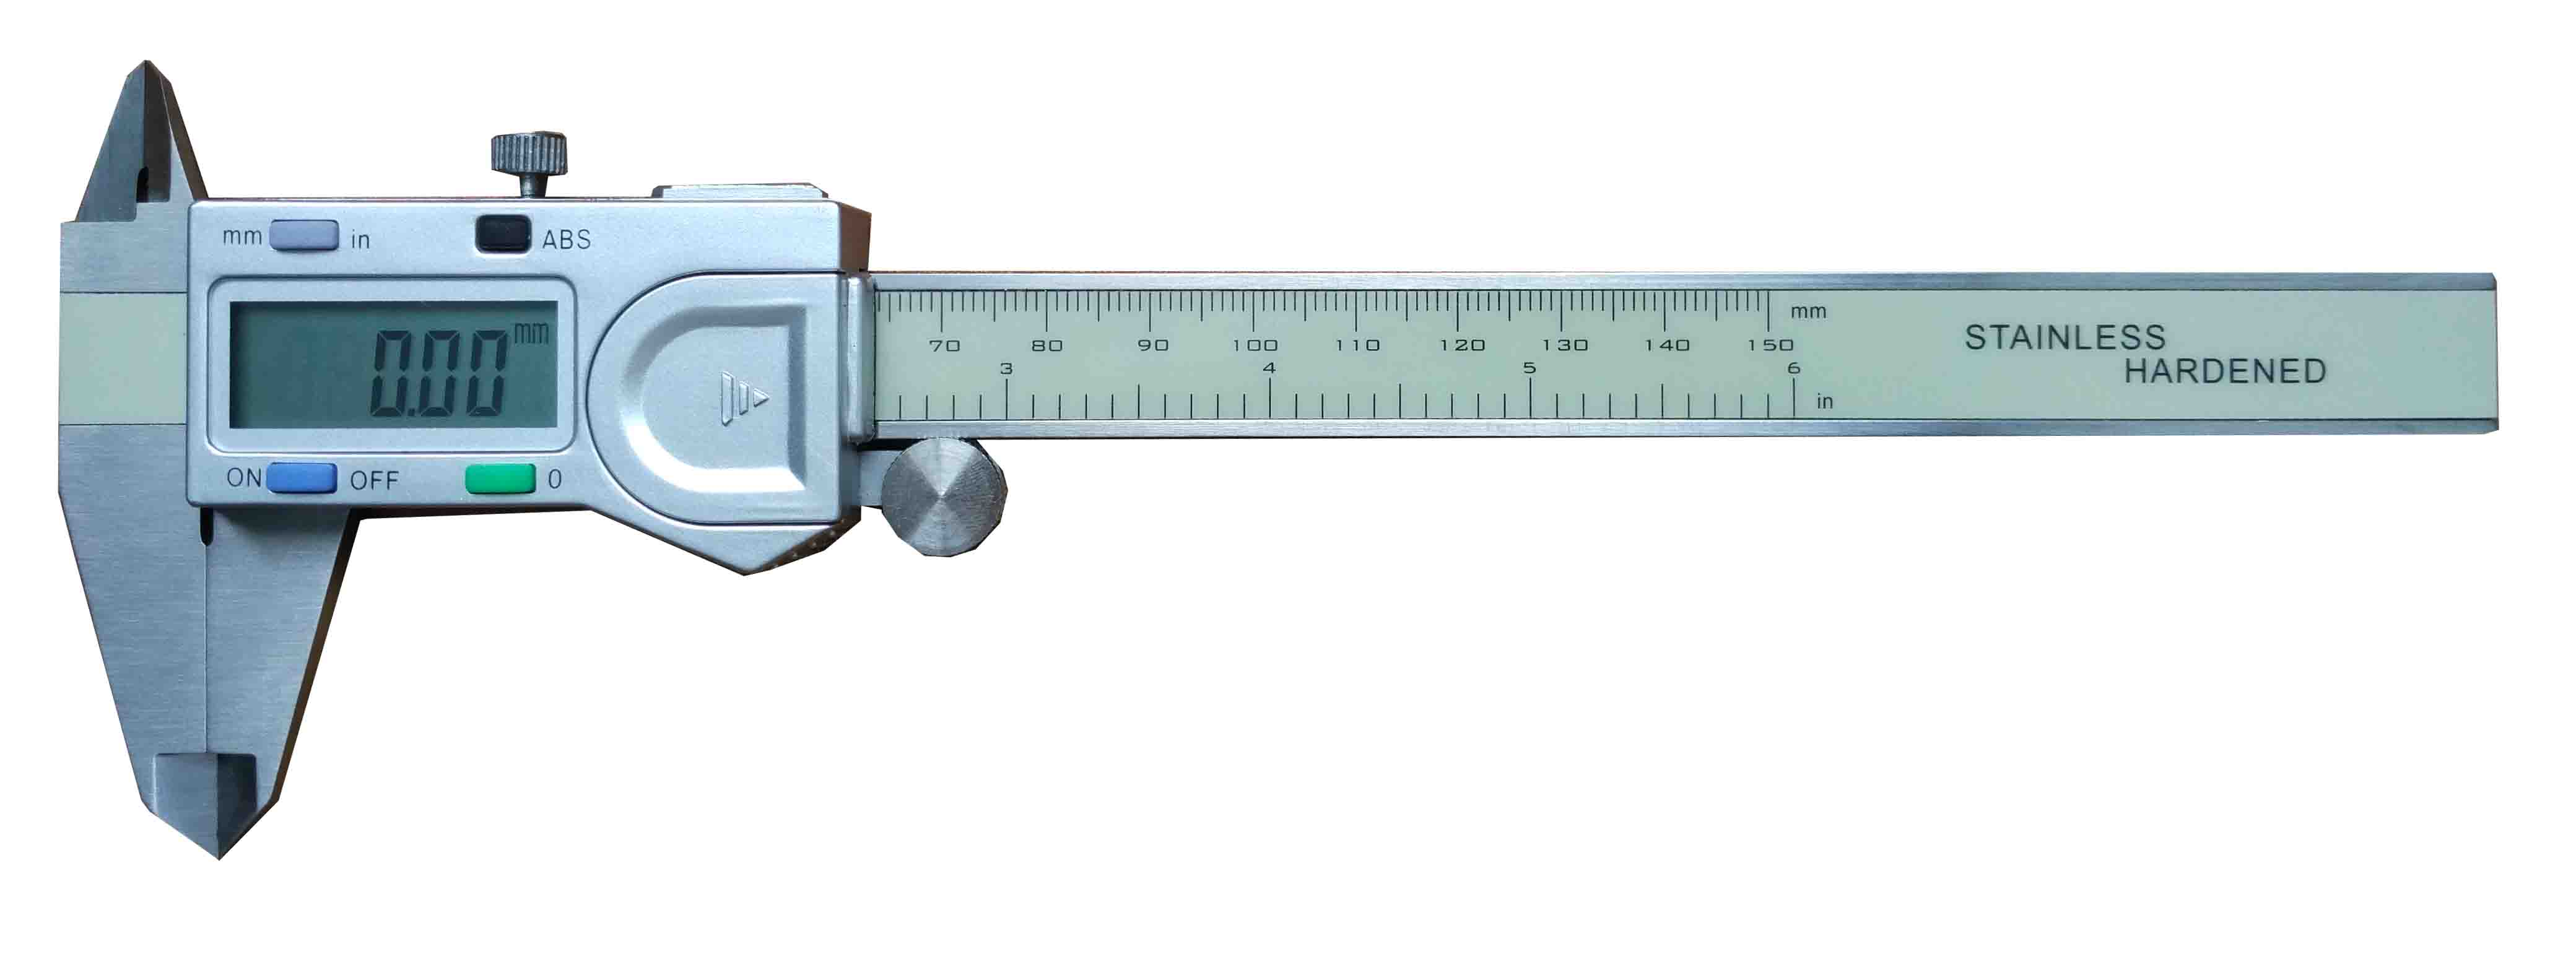 digital vernier caliper with four buttons